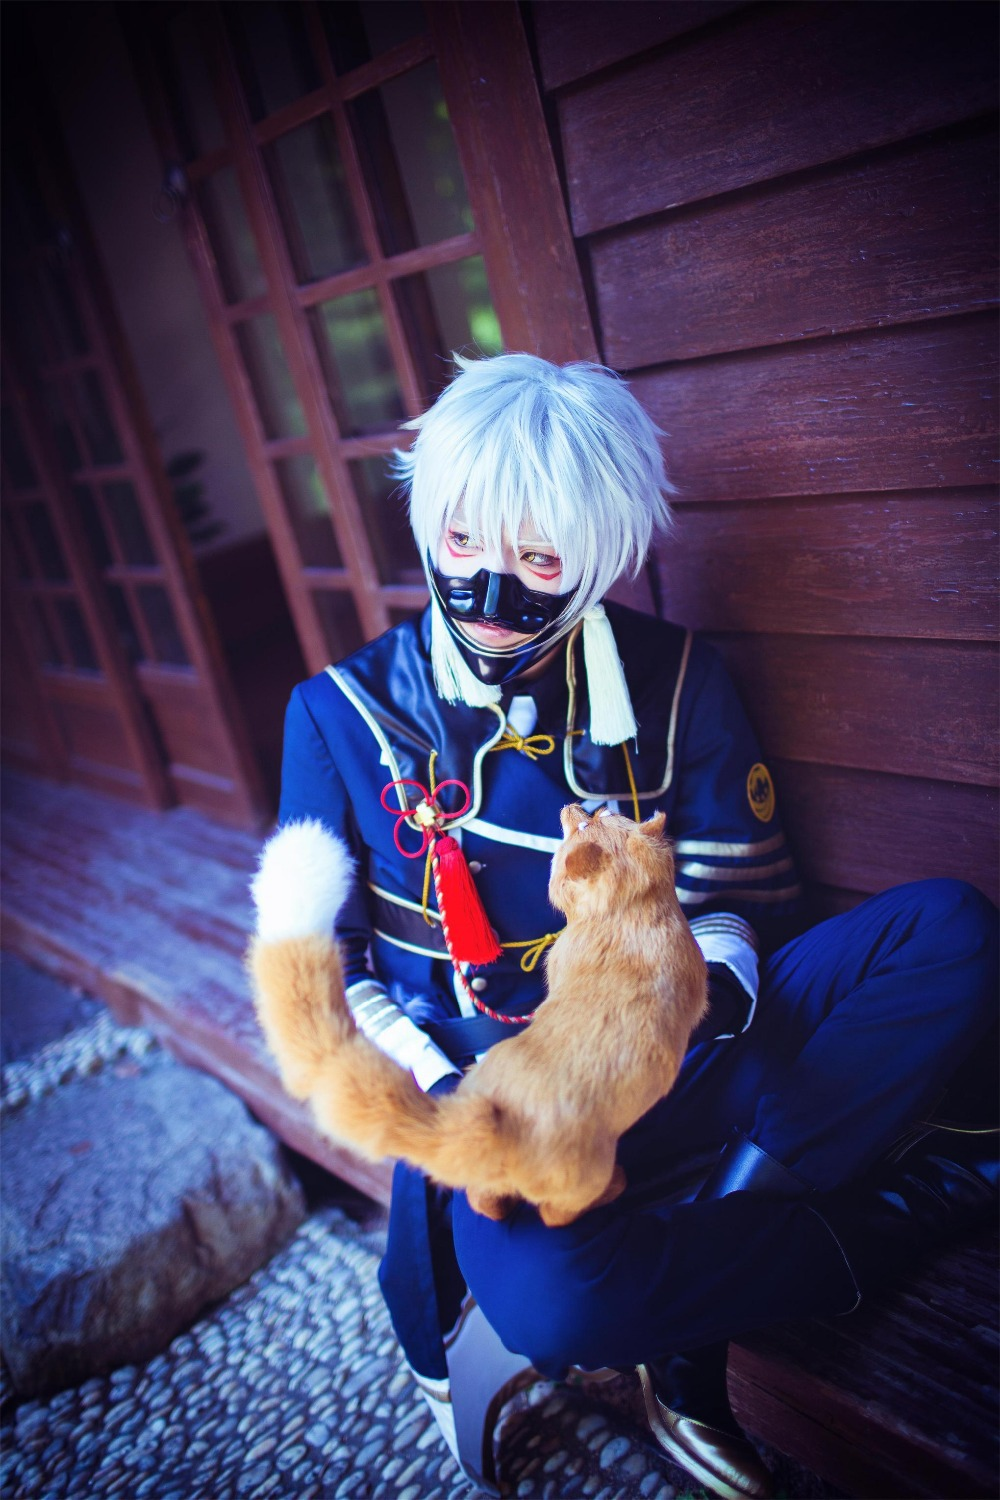 Trustedeal.com - My Cosplay Shop: Top Five Popular Anime ...